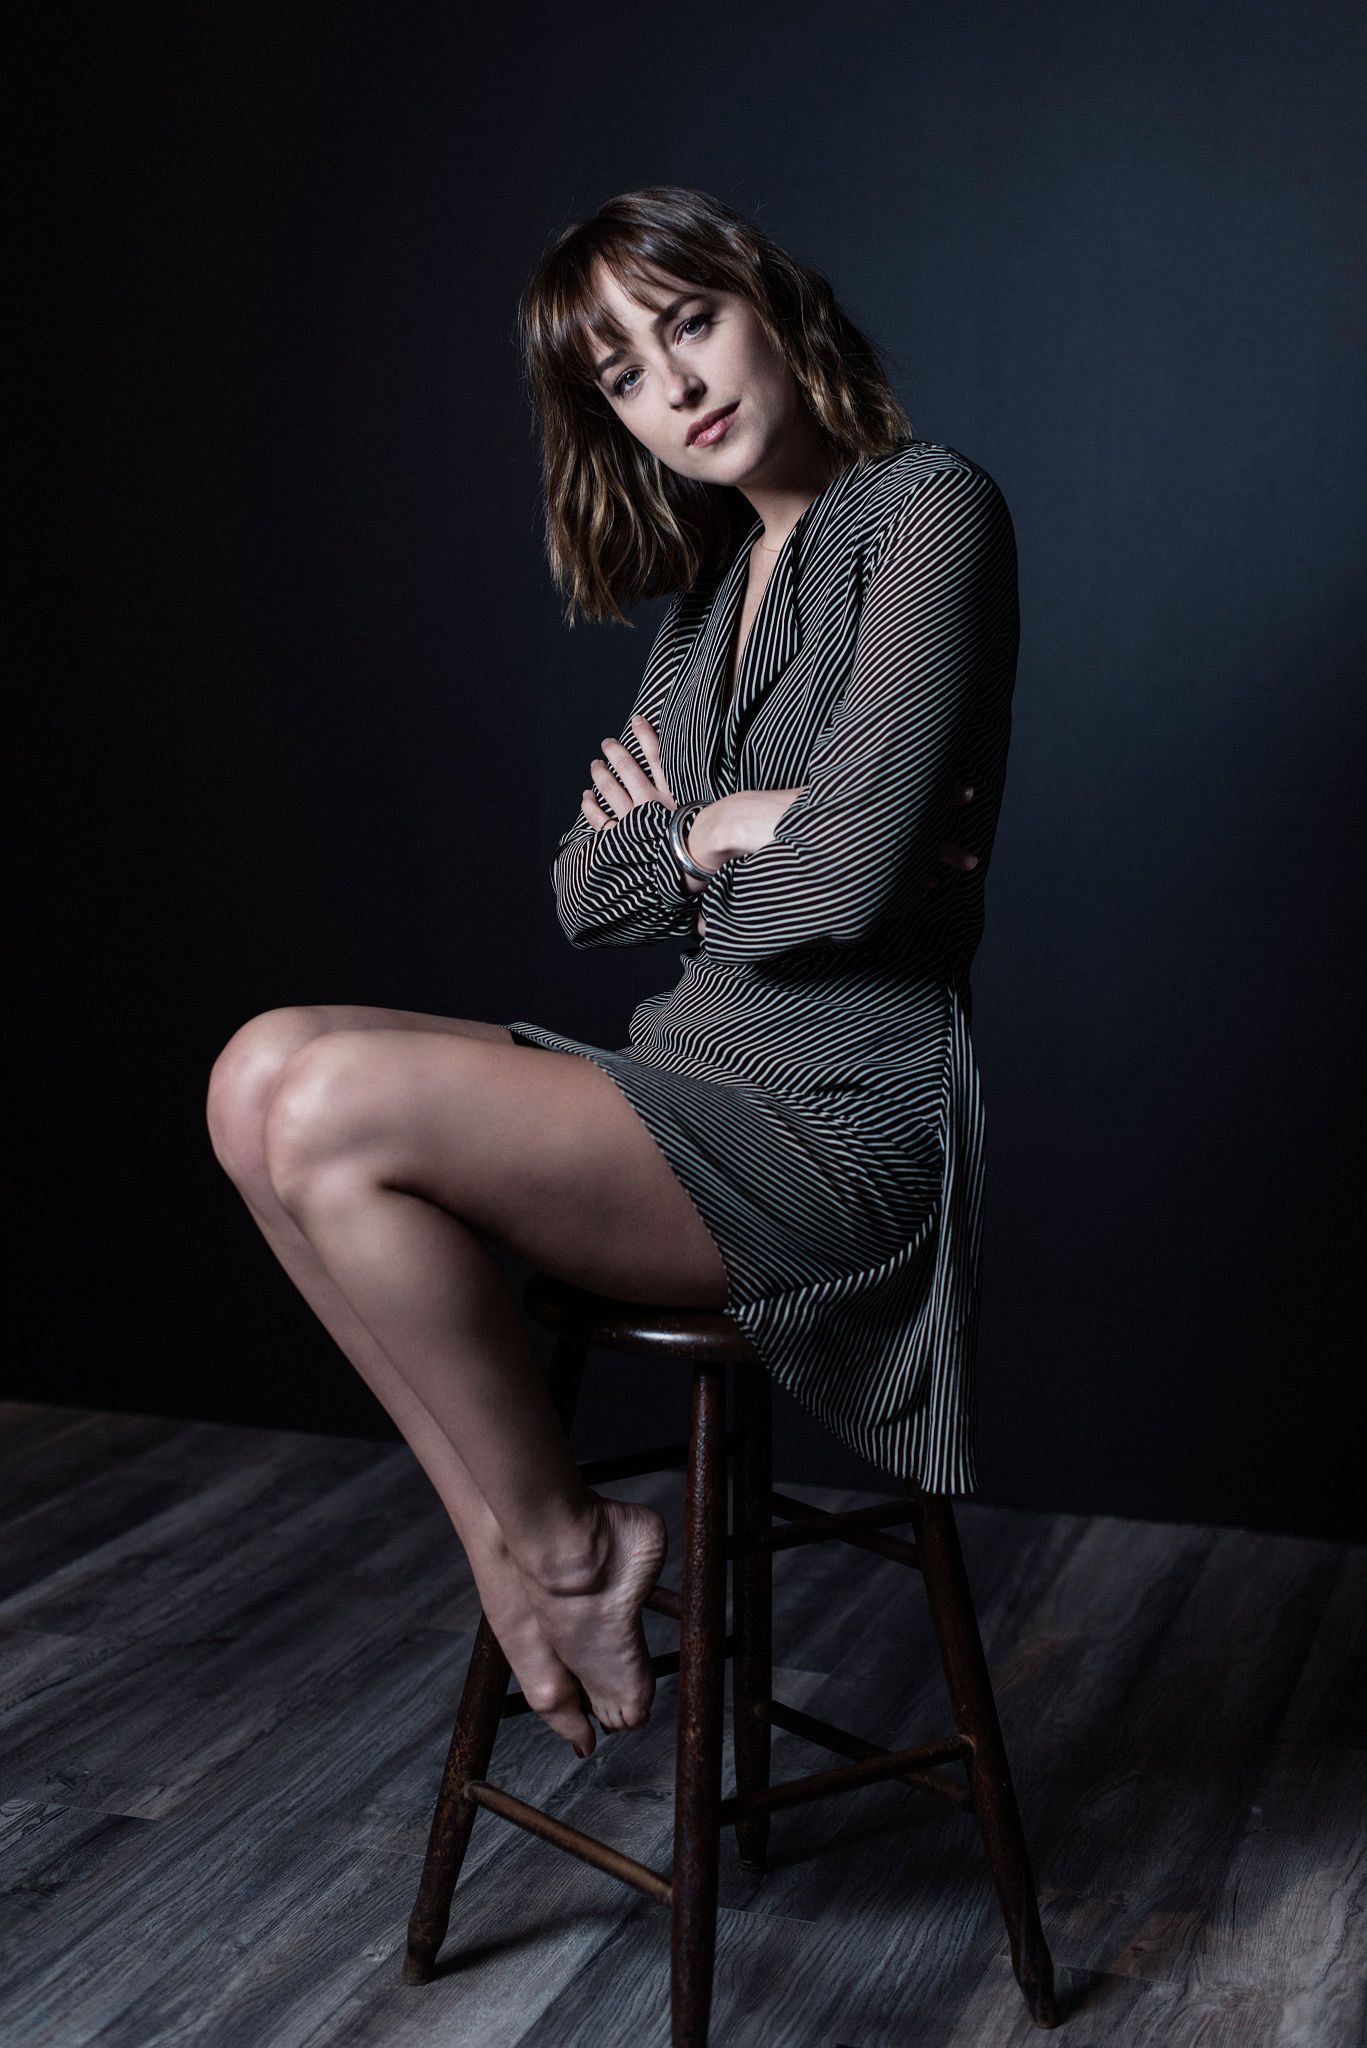 Dakota Johnsom picture - Dakota Johnson Net Worth, Movies, Family, Boyfriend, Pictures and Wallpapers